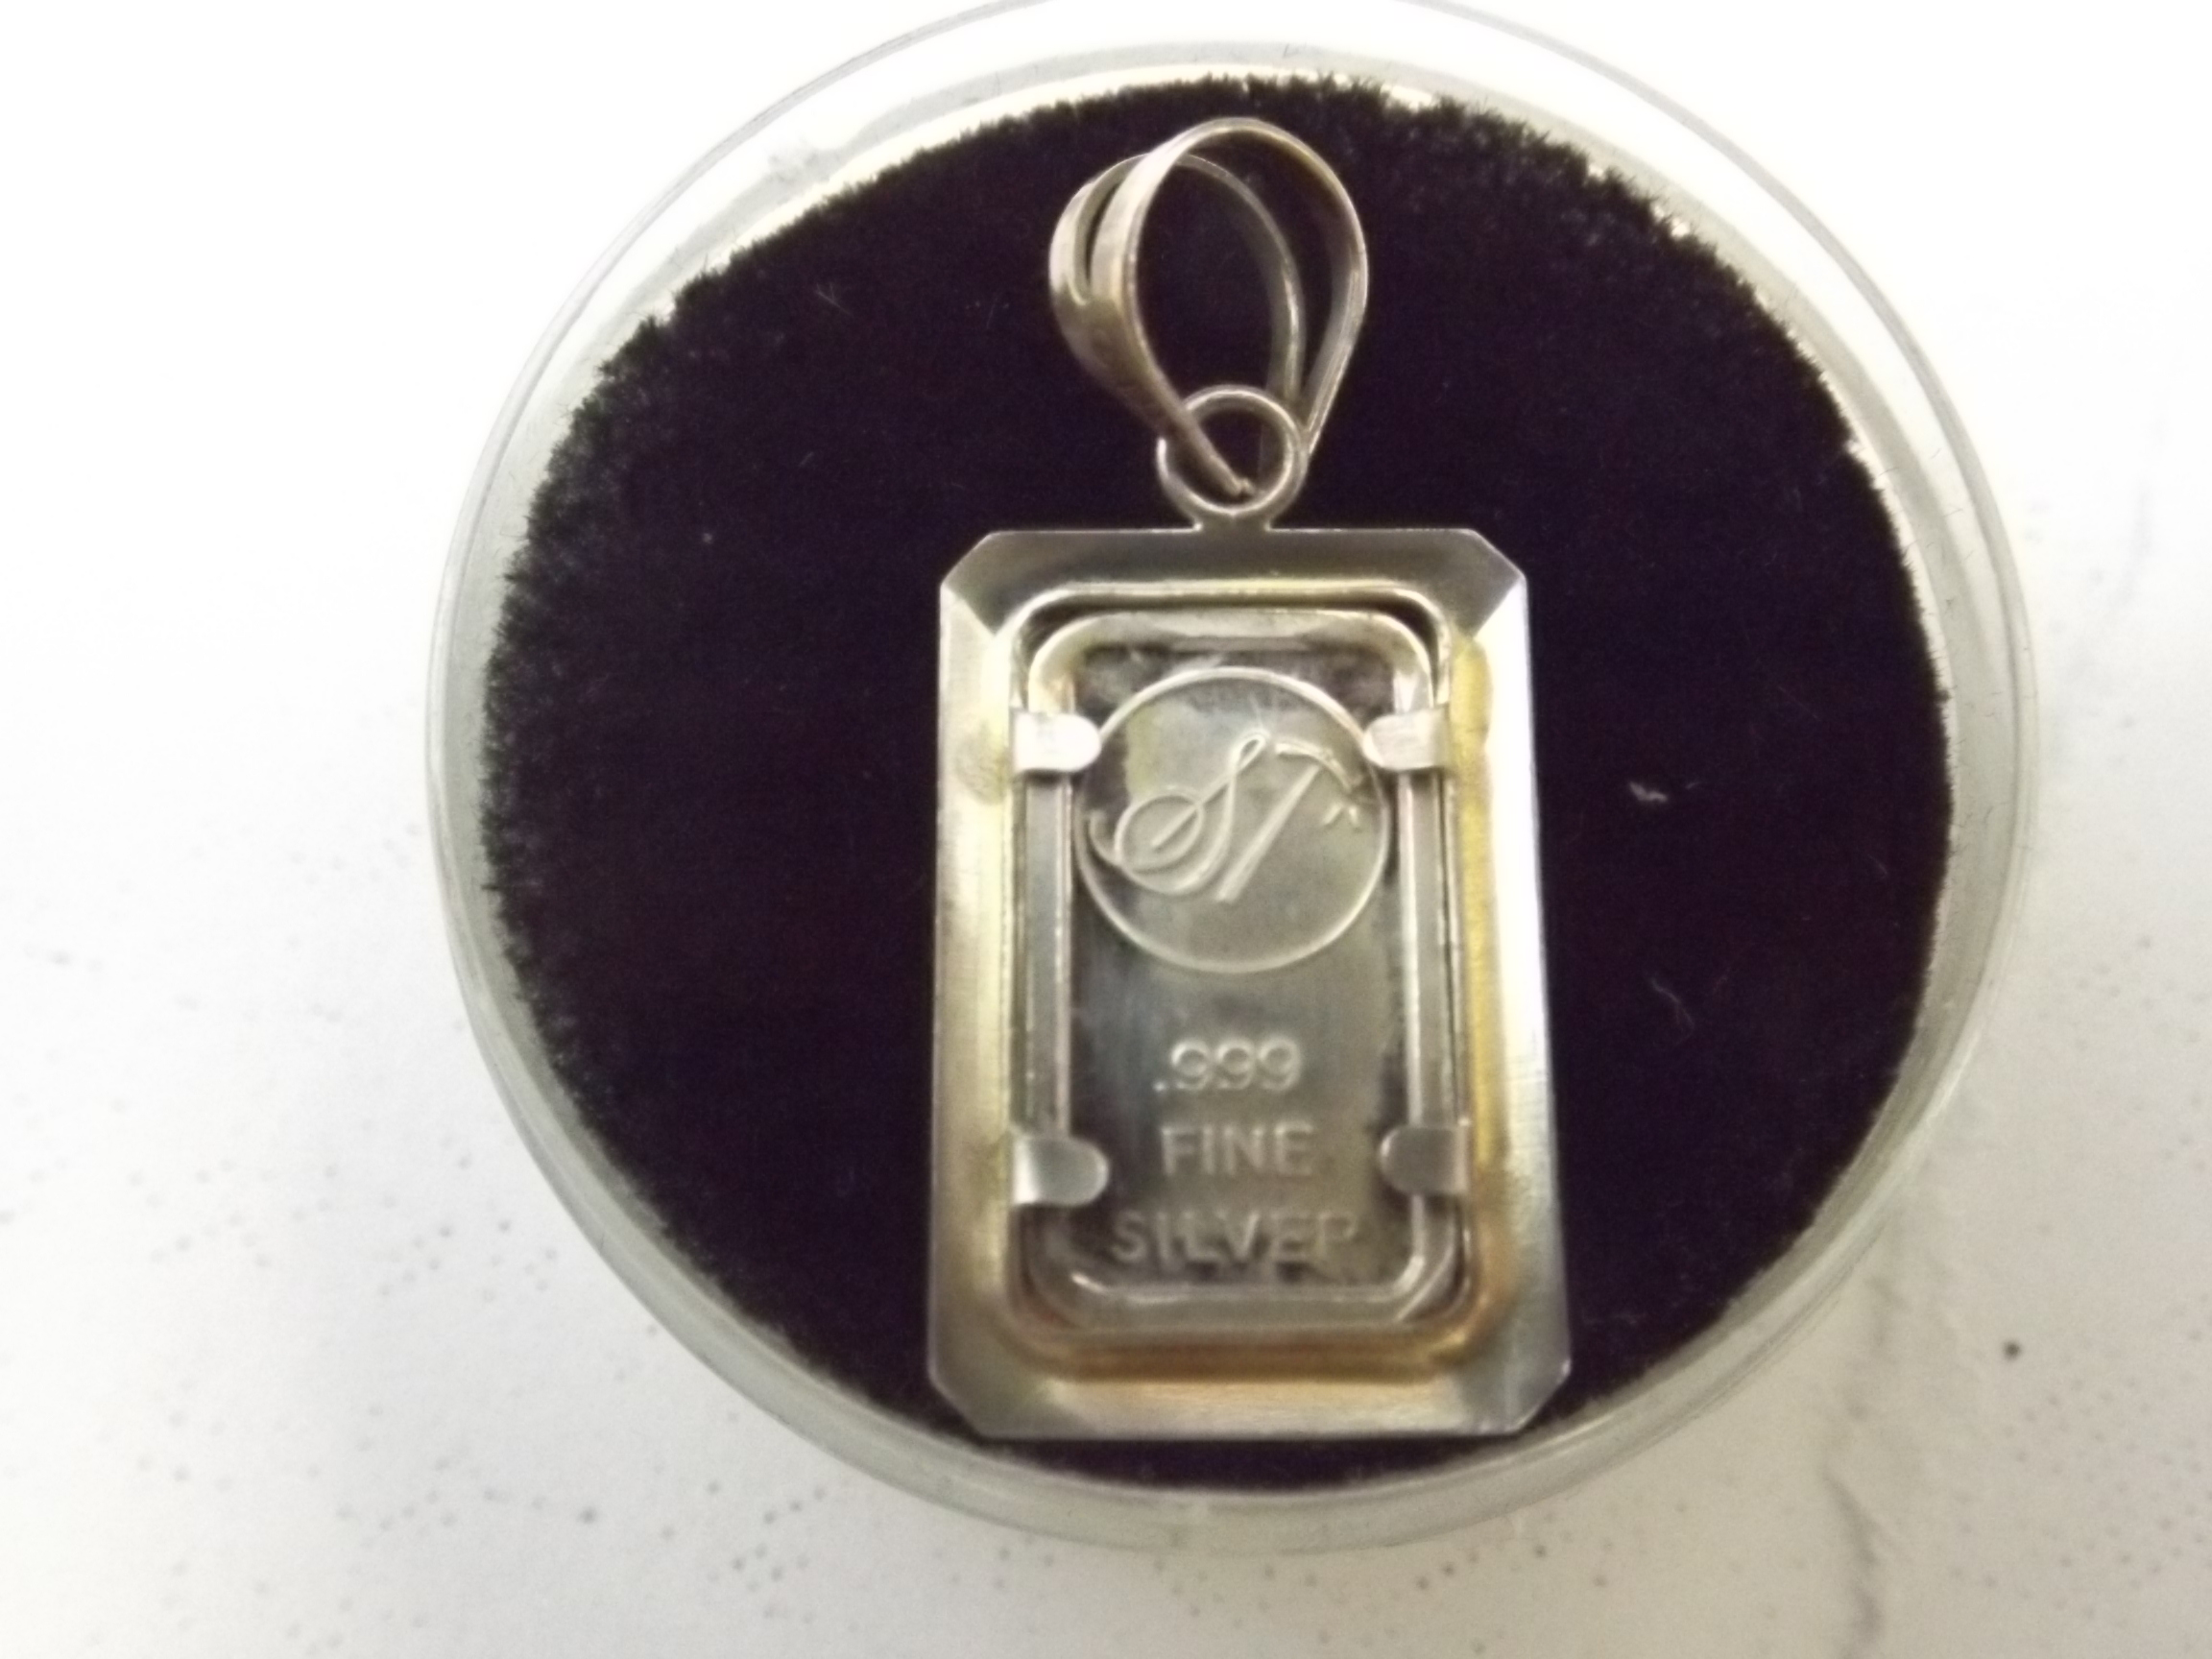 CR-SS.999 American Flag Medallion .999 Fine Silver with Rabbit Bale